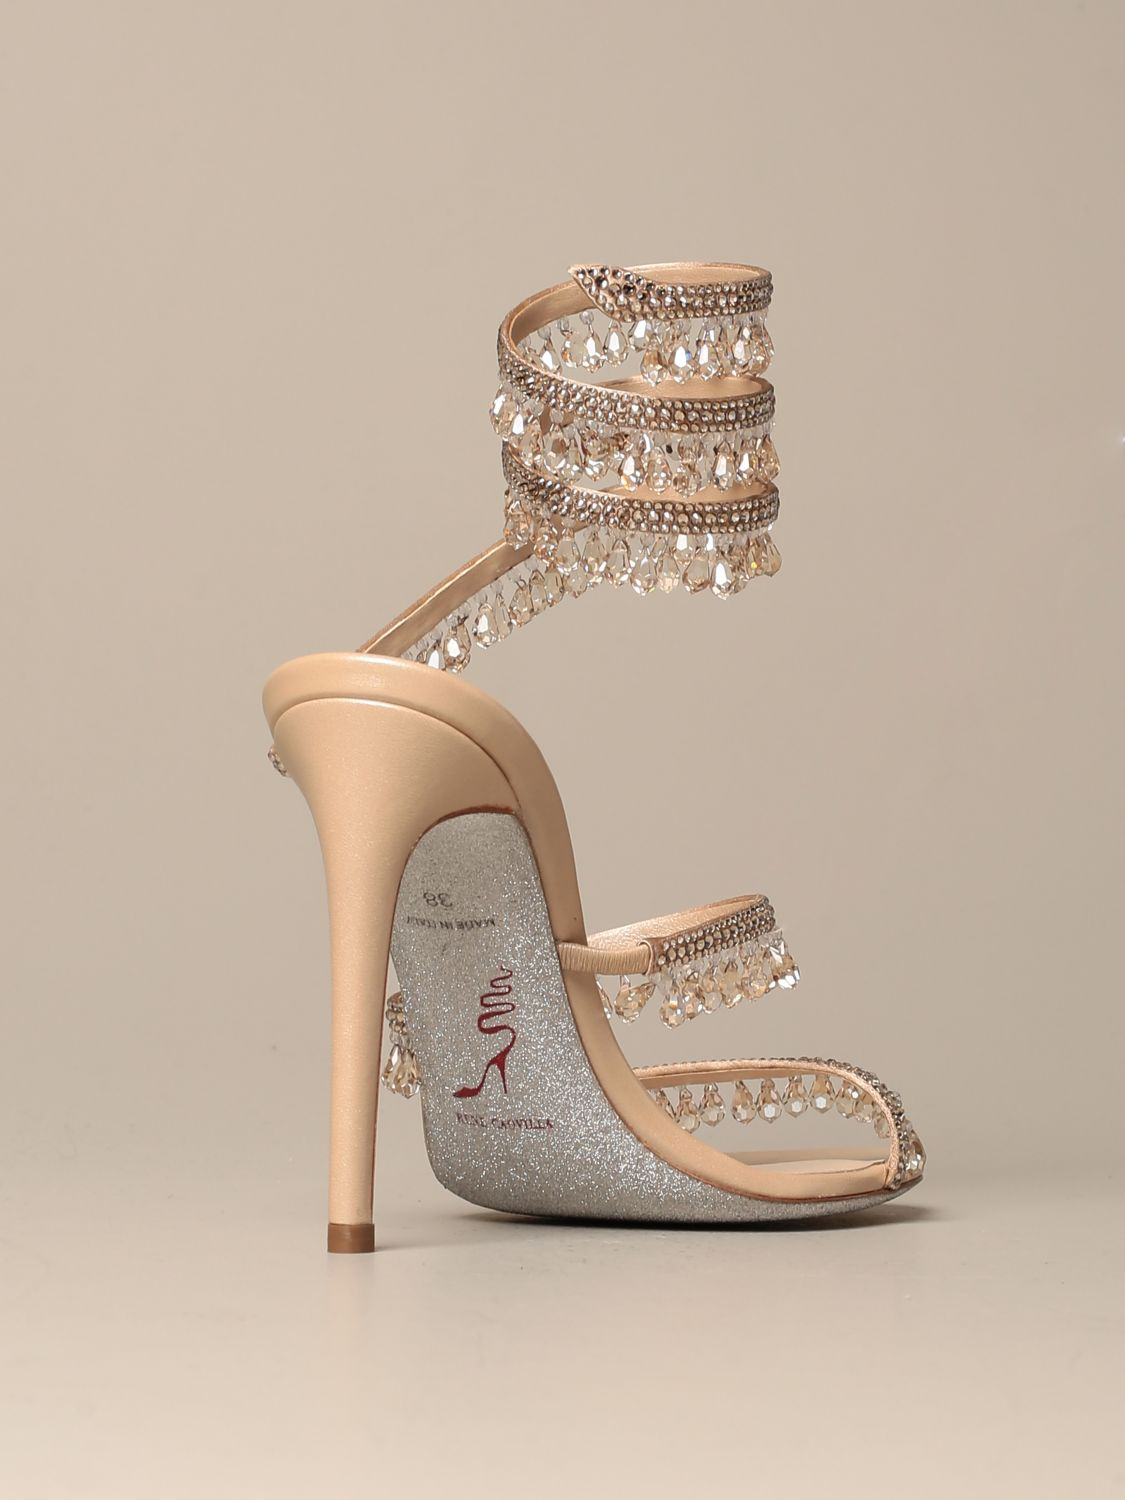 Heeled sandals Rene Caovilla: René Caovilla Chandelier sandal in satin with crystals and pendants nude 3